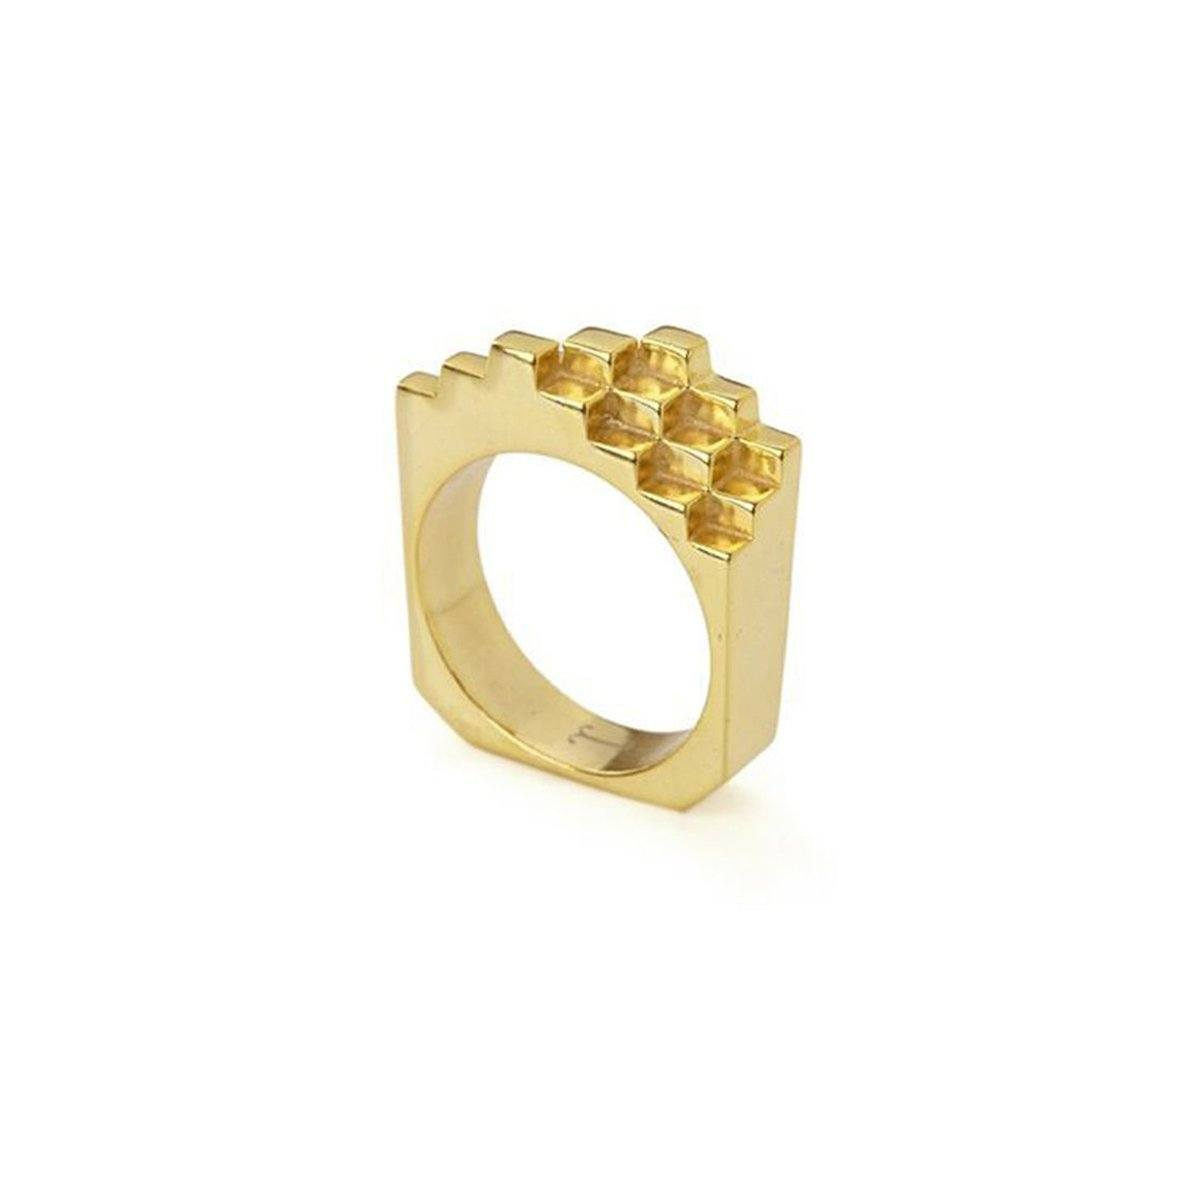 Ring - HIVE RING  18ct Gold Vermeil